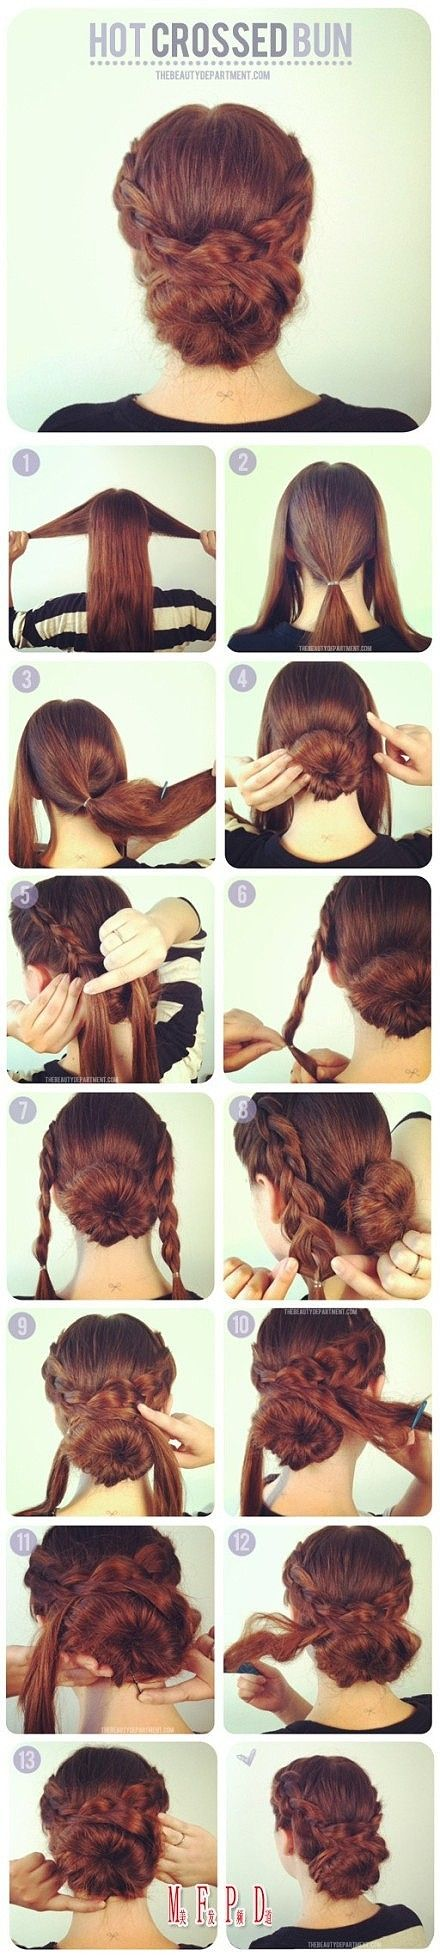 Hot Crossed Bun. Easy to do center bun with two side braids, loosened then pinned in around bun. 13 step photo tutorial.